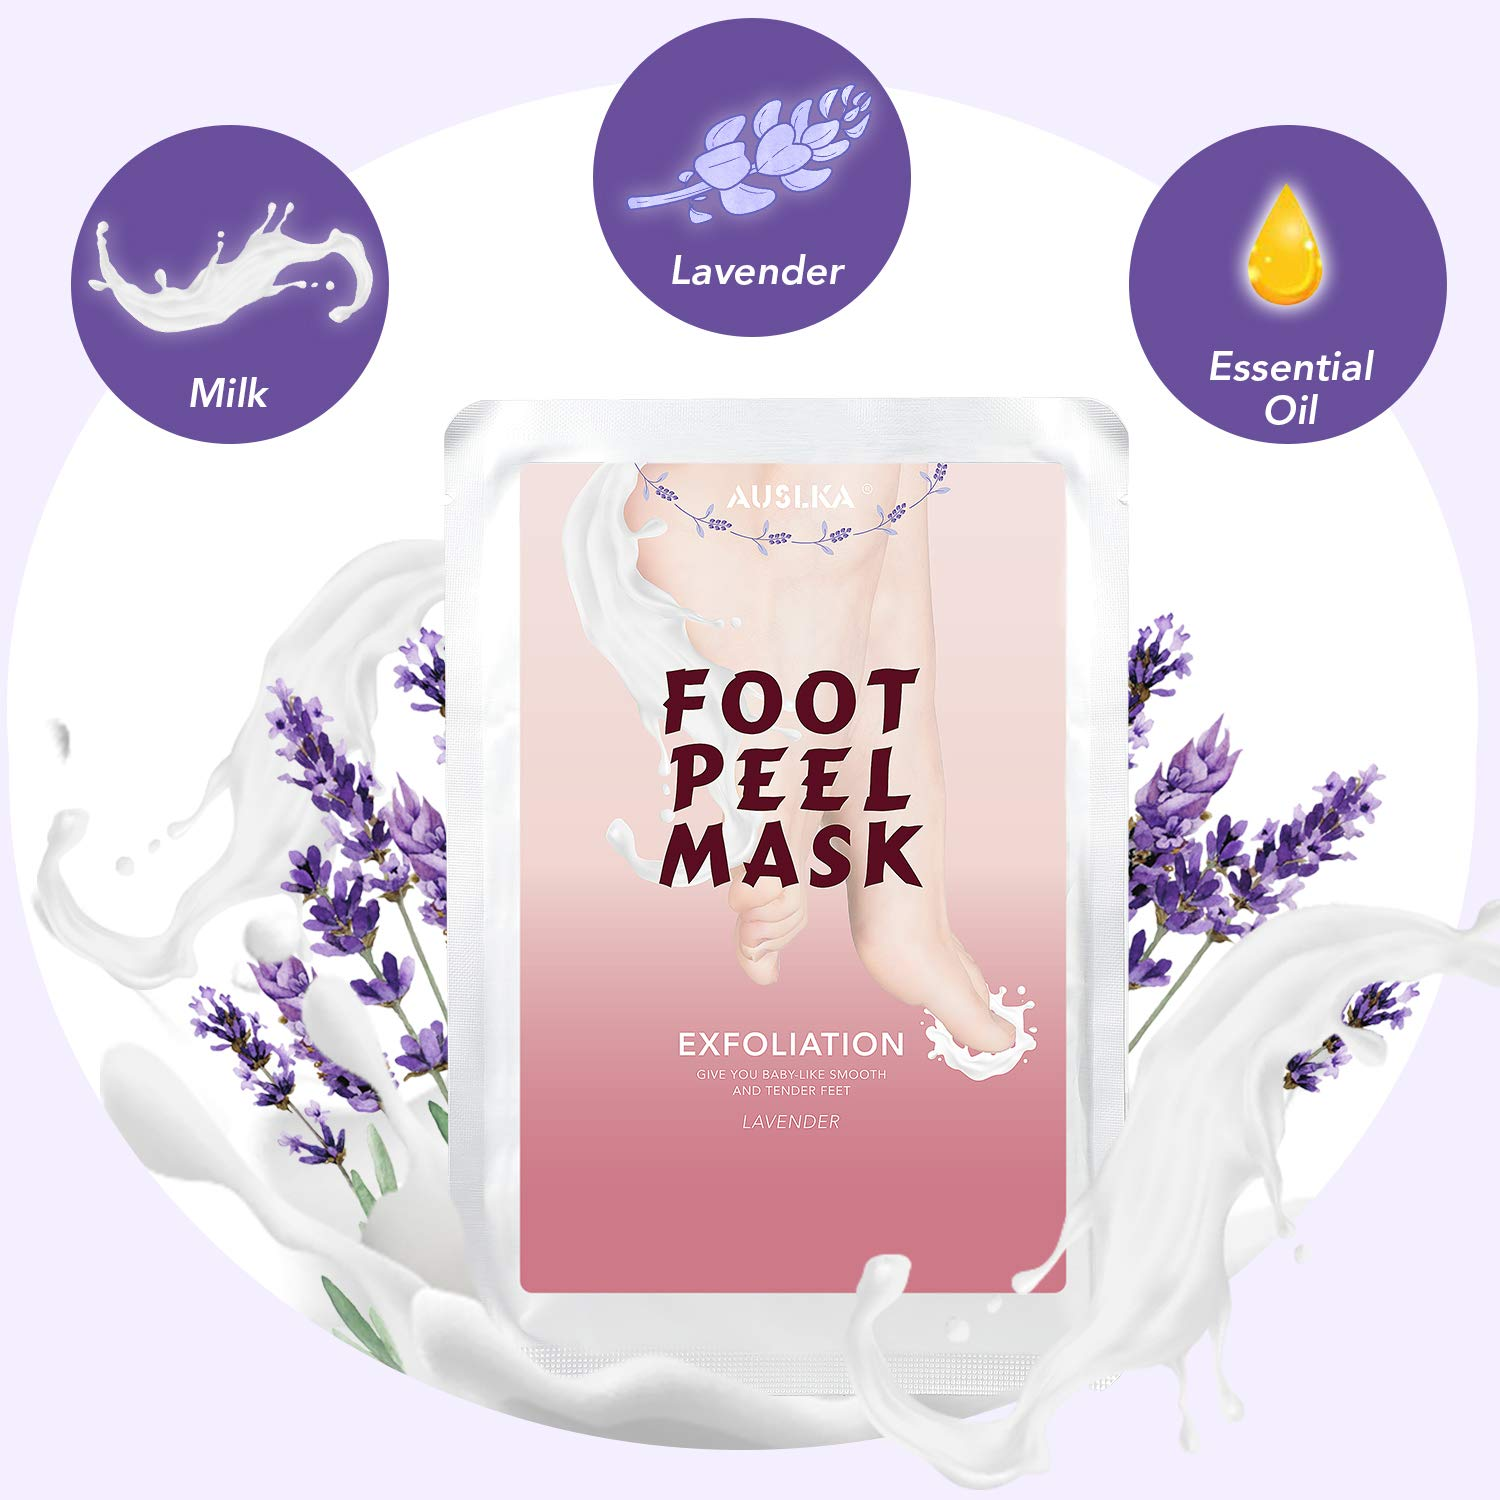 Foot Peel Exfoliating Mask, Exfoliant For Soft Feet Peeling, Rid Dead Skin, Supple And Intensely Hydrated (2 Pack)